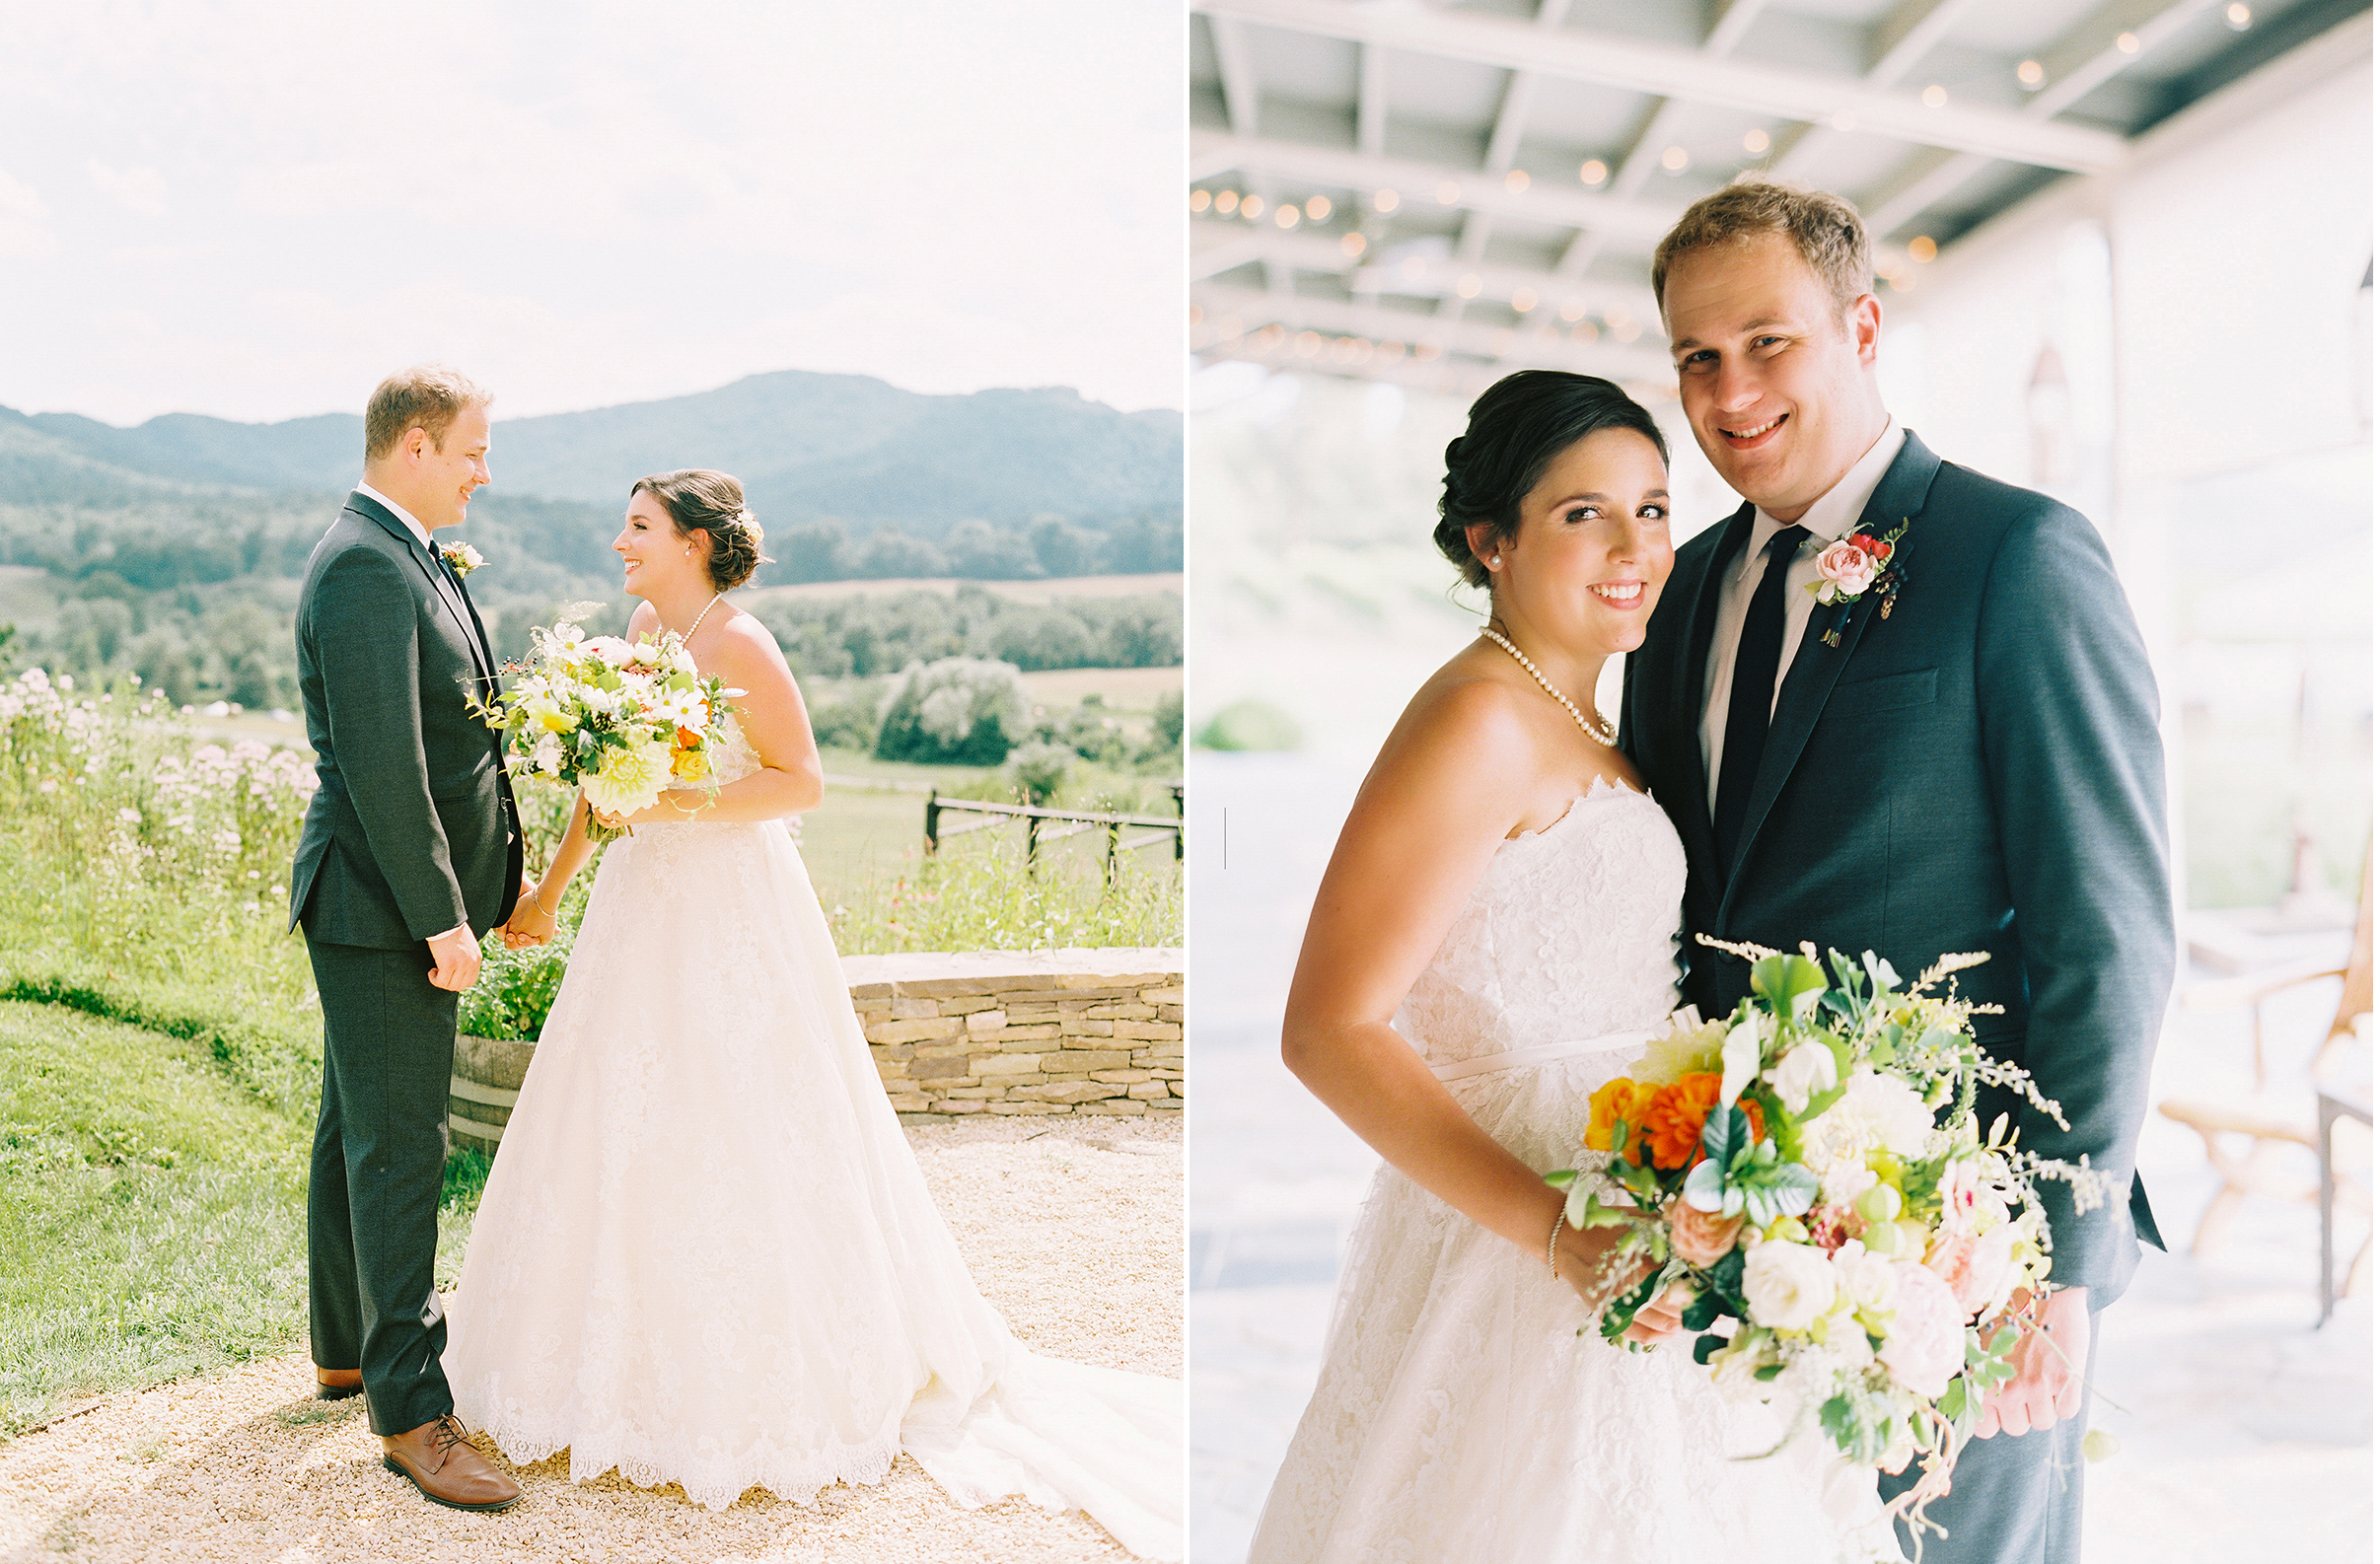 katie stoops photography-pippin hill-ashley baber weddings17.jpg